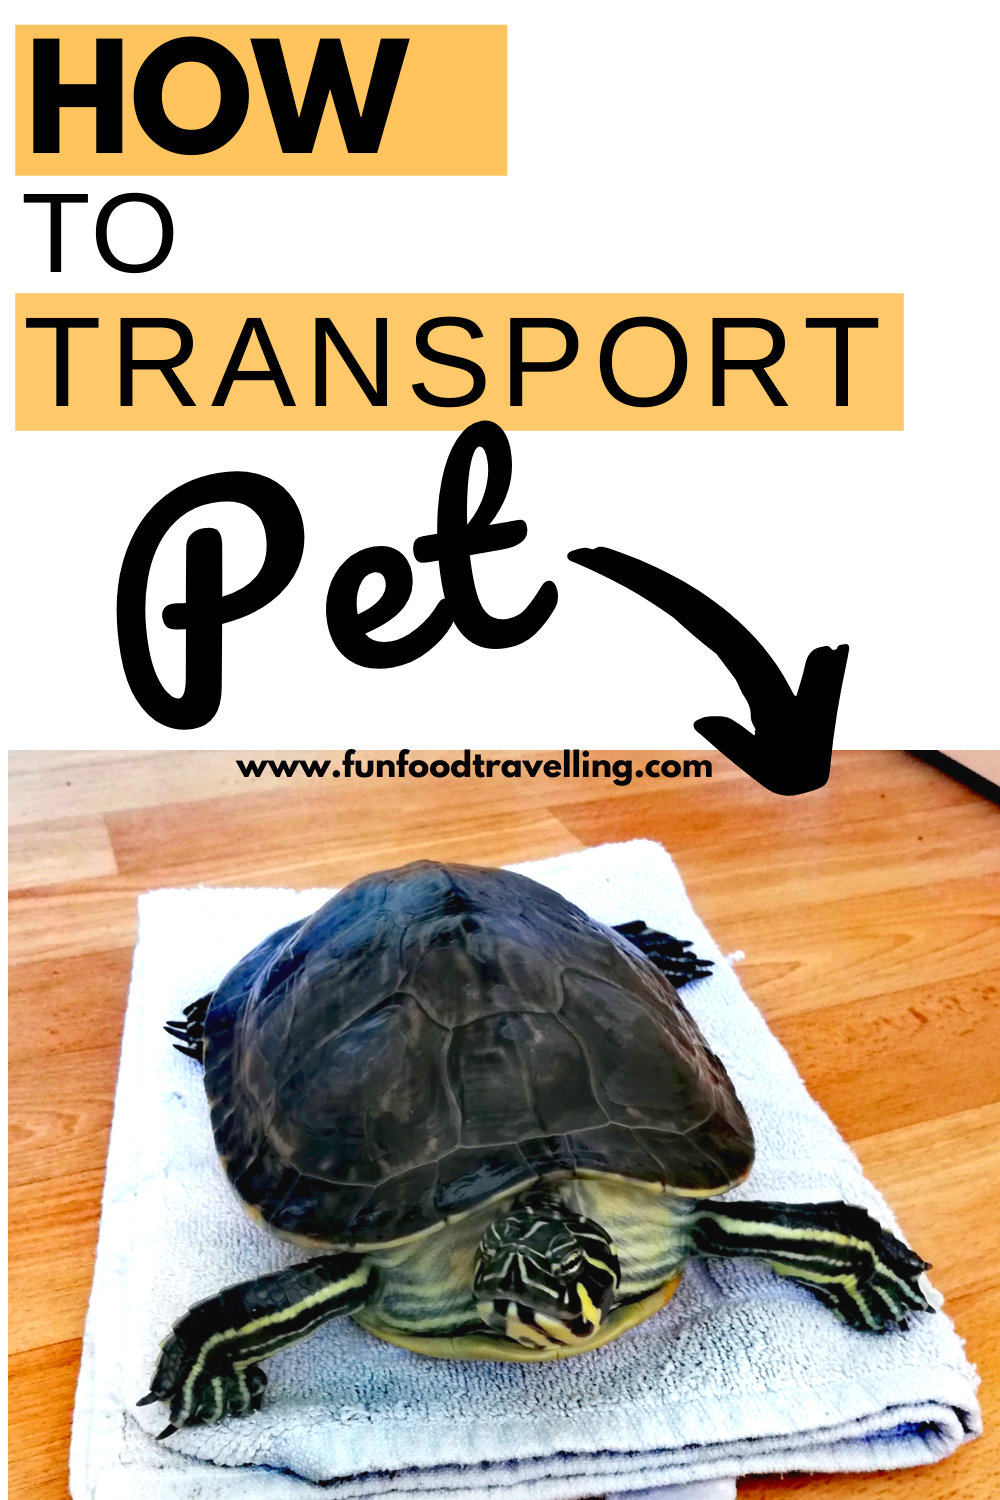 How To Organize Pet Transport Service Moving With Our Turtle Fun Food Travelling In 2020 Pet Transport Pet Transport Service Transportation